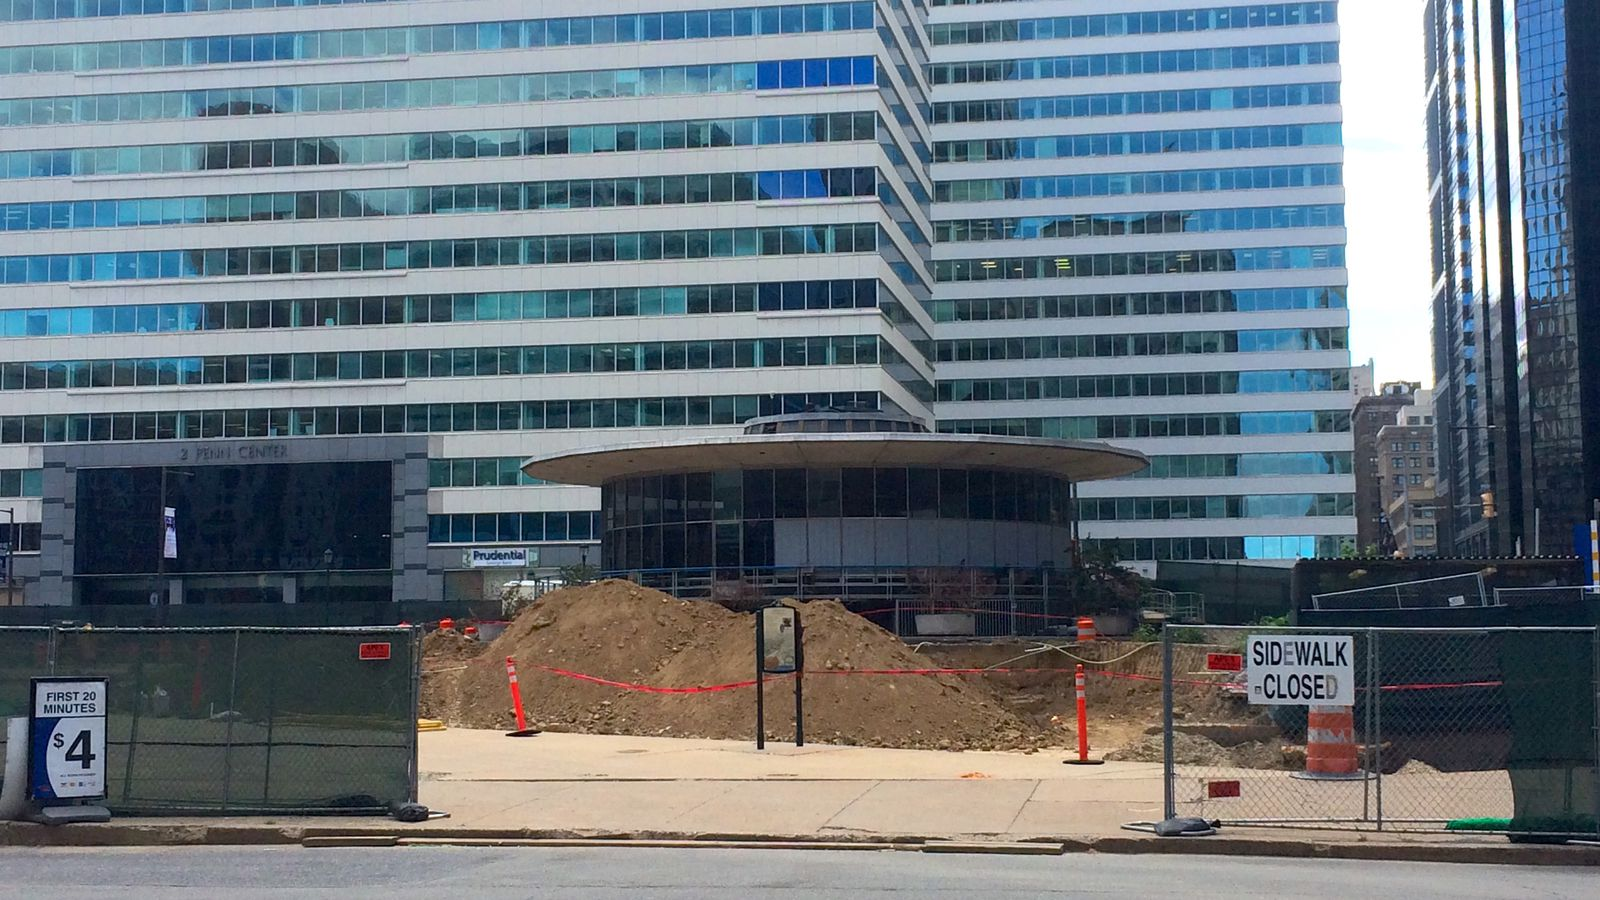 Construction Begins On Love Park S Welcome Center With 700k Pledge Curbed Philly